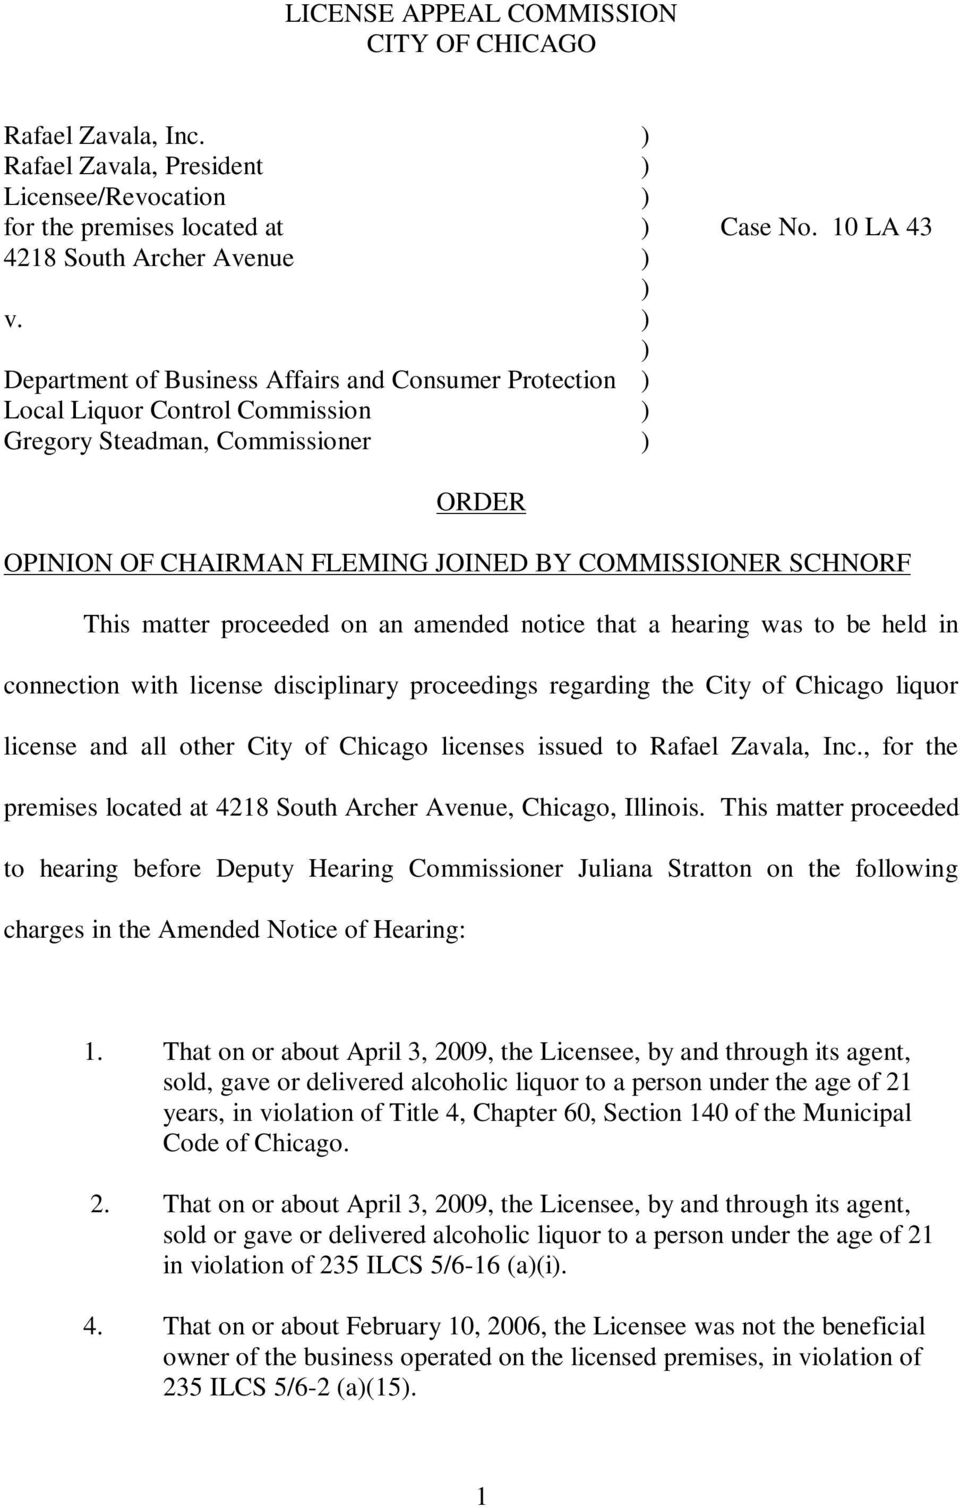 matter proceeded on an amended notice that a hearing was to be held in connection with license disciplinary proceedings regarding the City of Chicago liquor license and all other City of Chicago